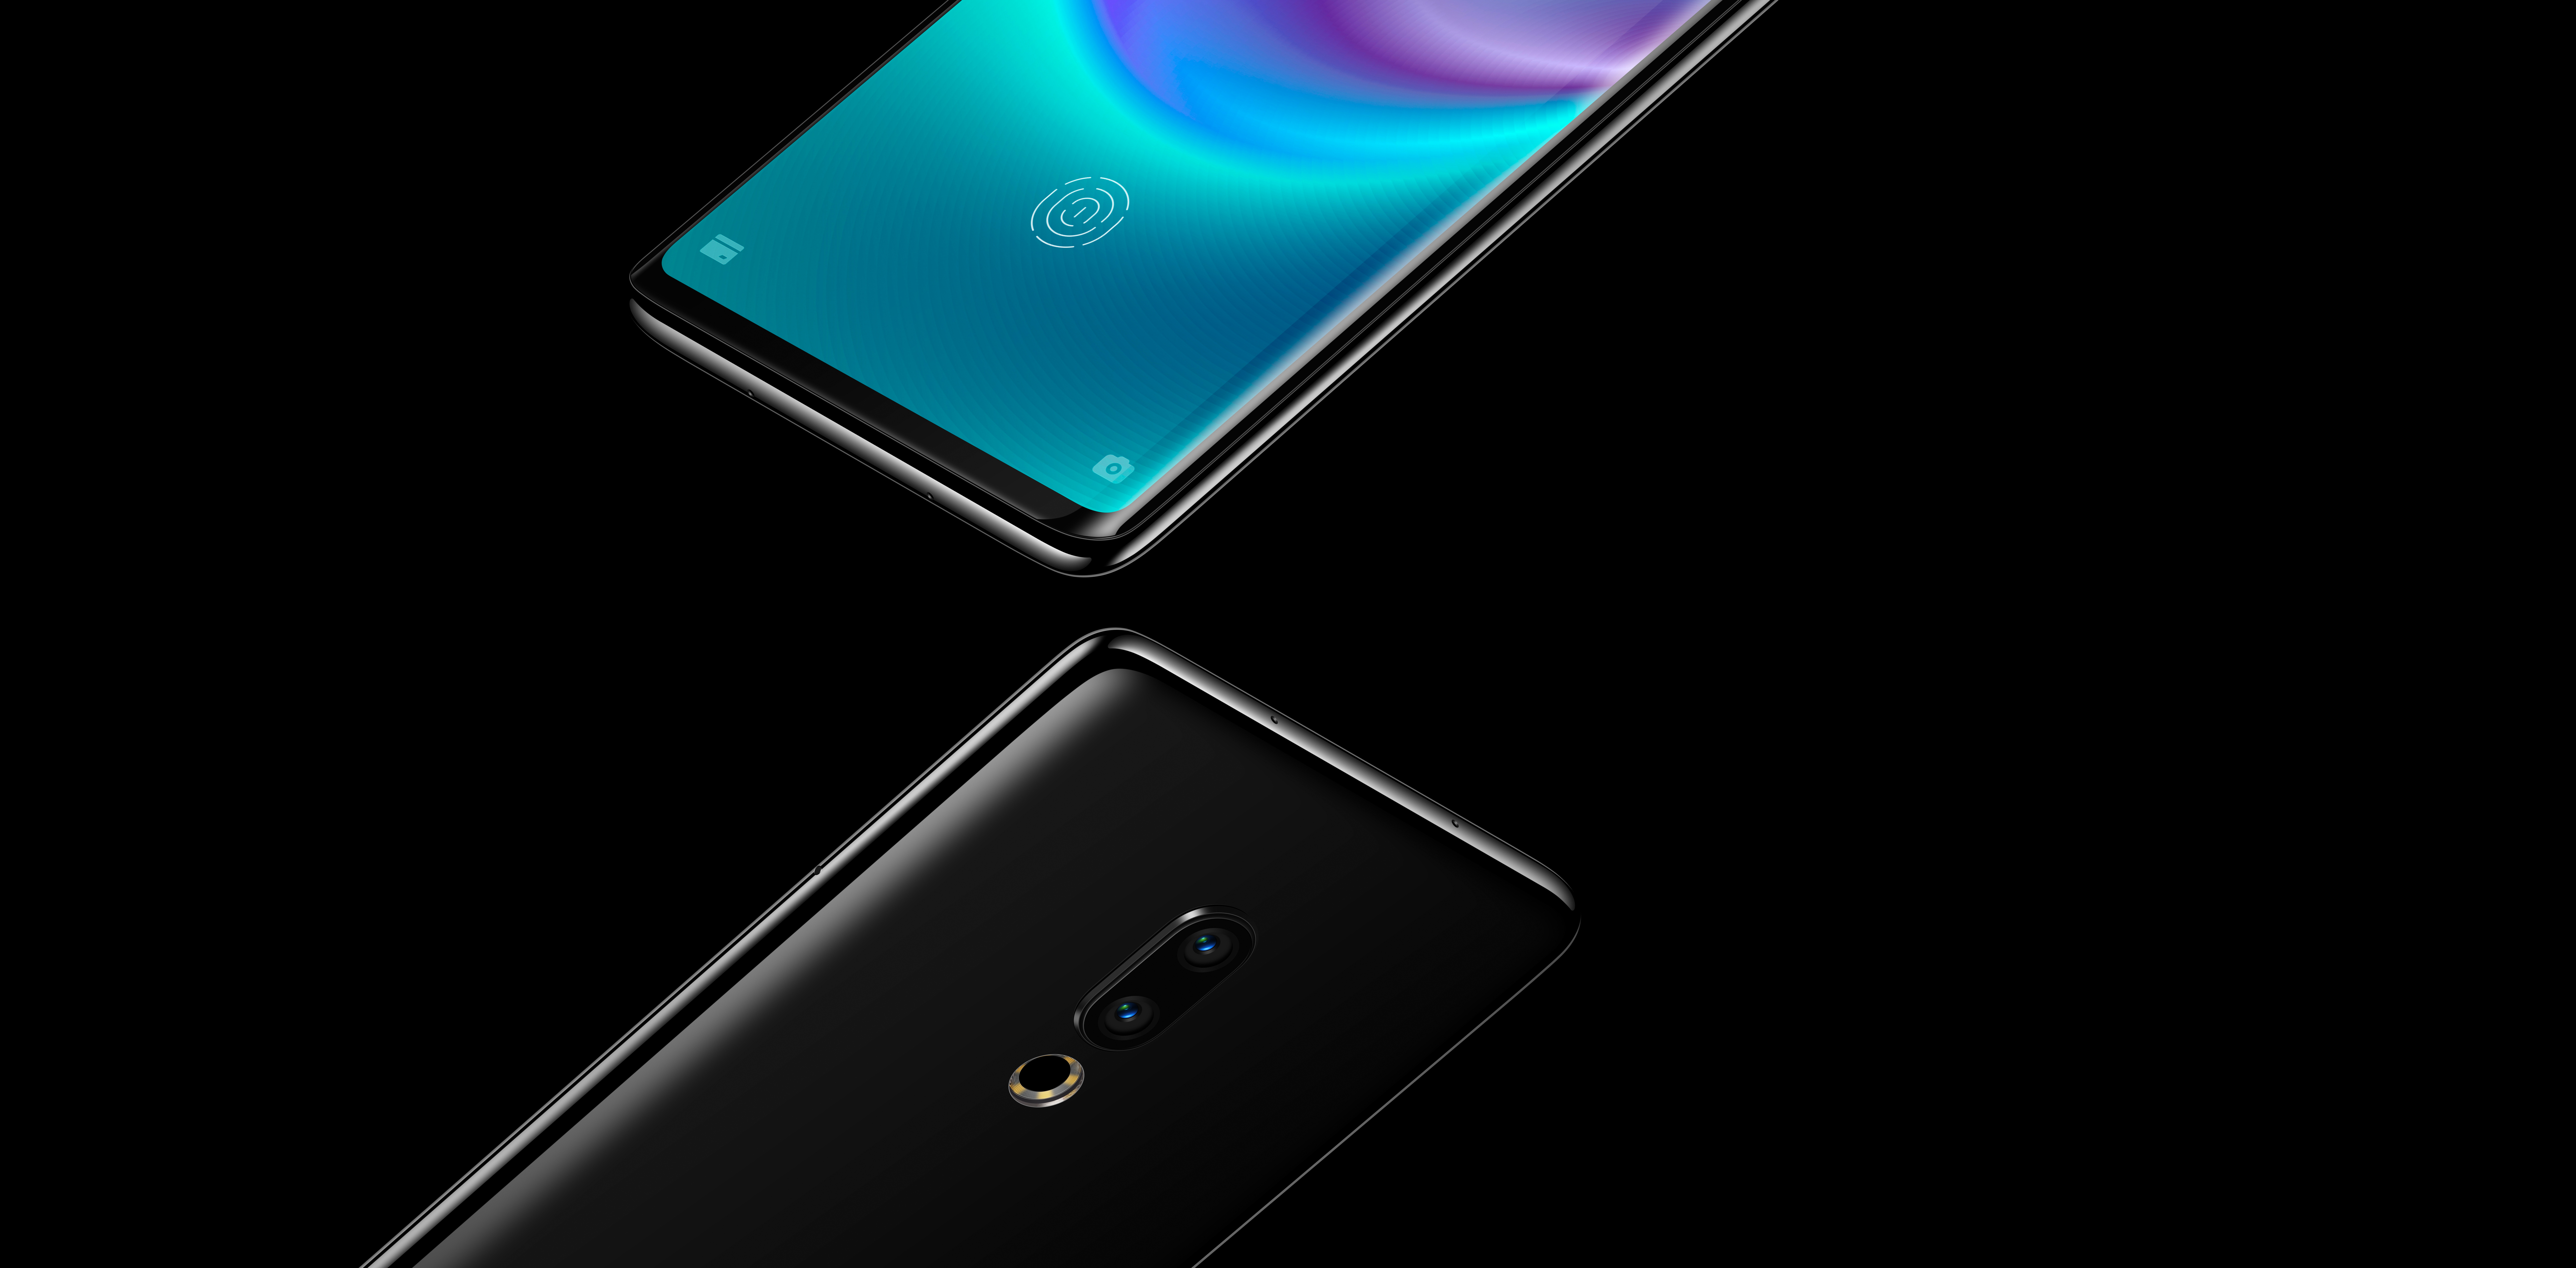 Meizu announces a phone with no ports or buttons because we